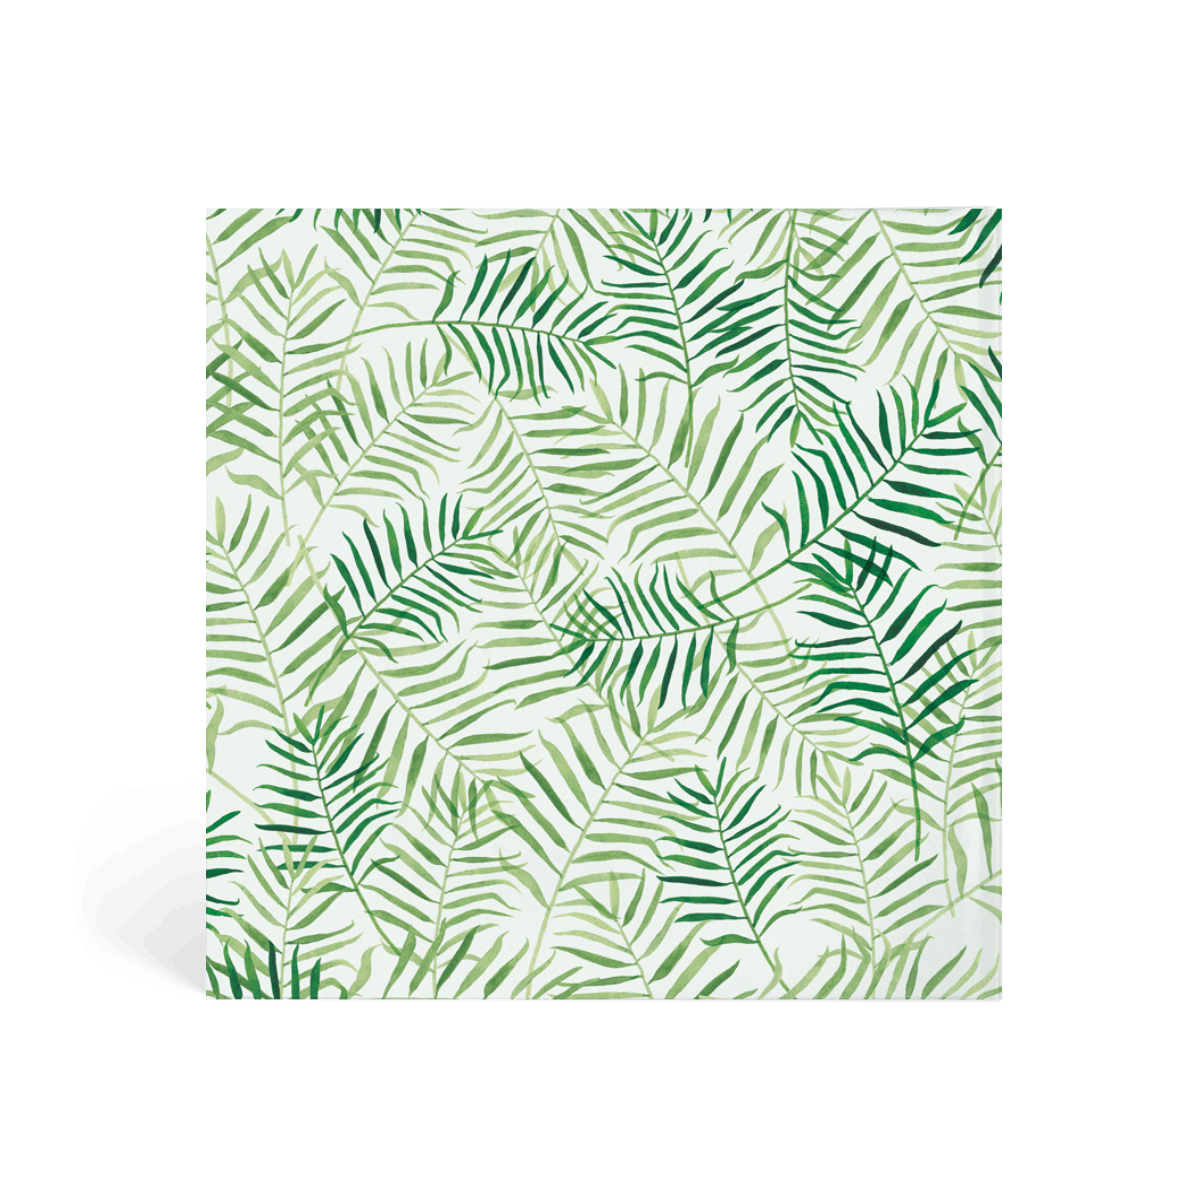 Https%3a%2f%2fwww.papier.com%2fproduct image%2f44655%2f33%2fpalm fronds 11195 back 1534844602.png?ixlib=rb 1.1